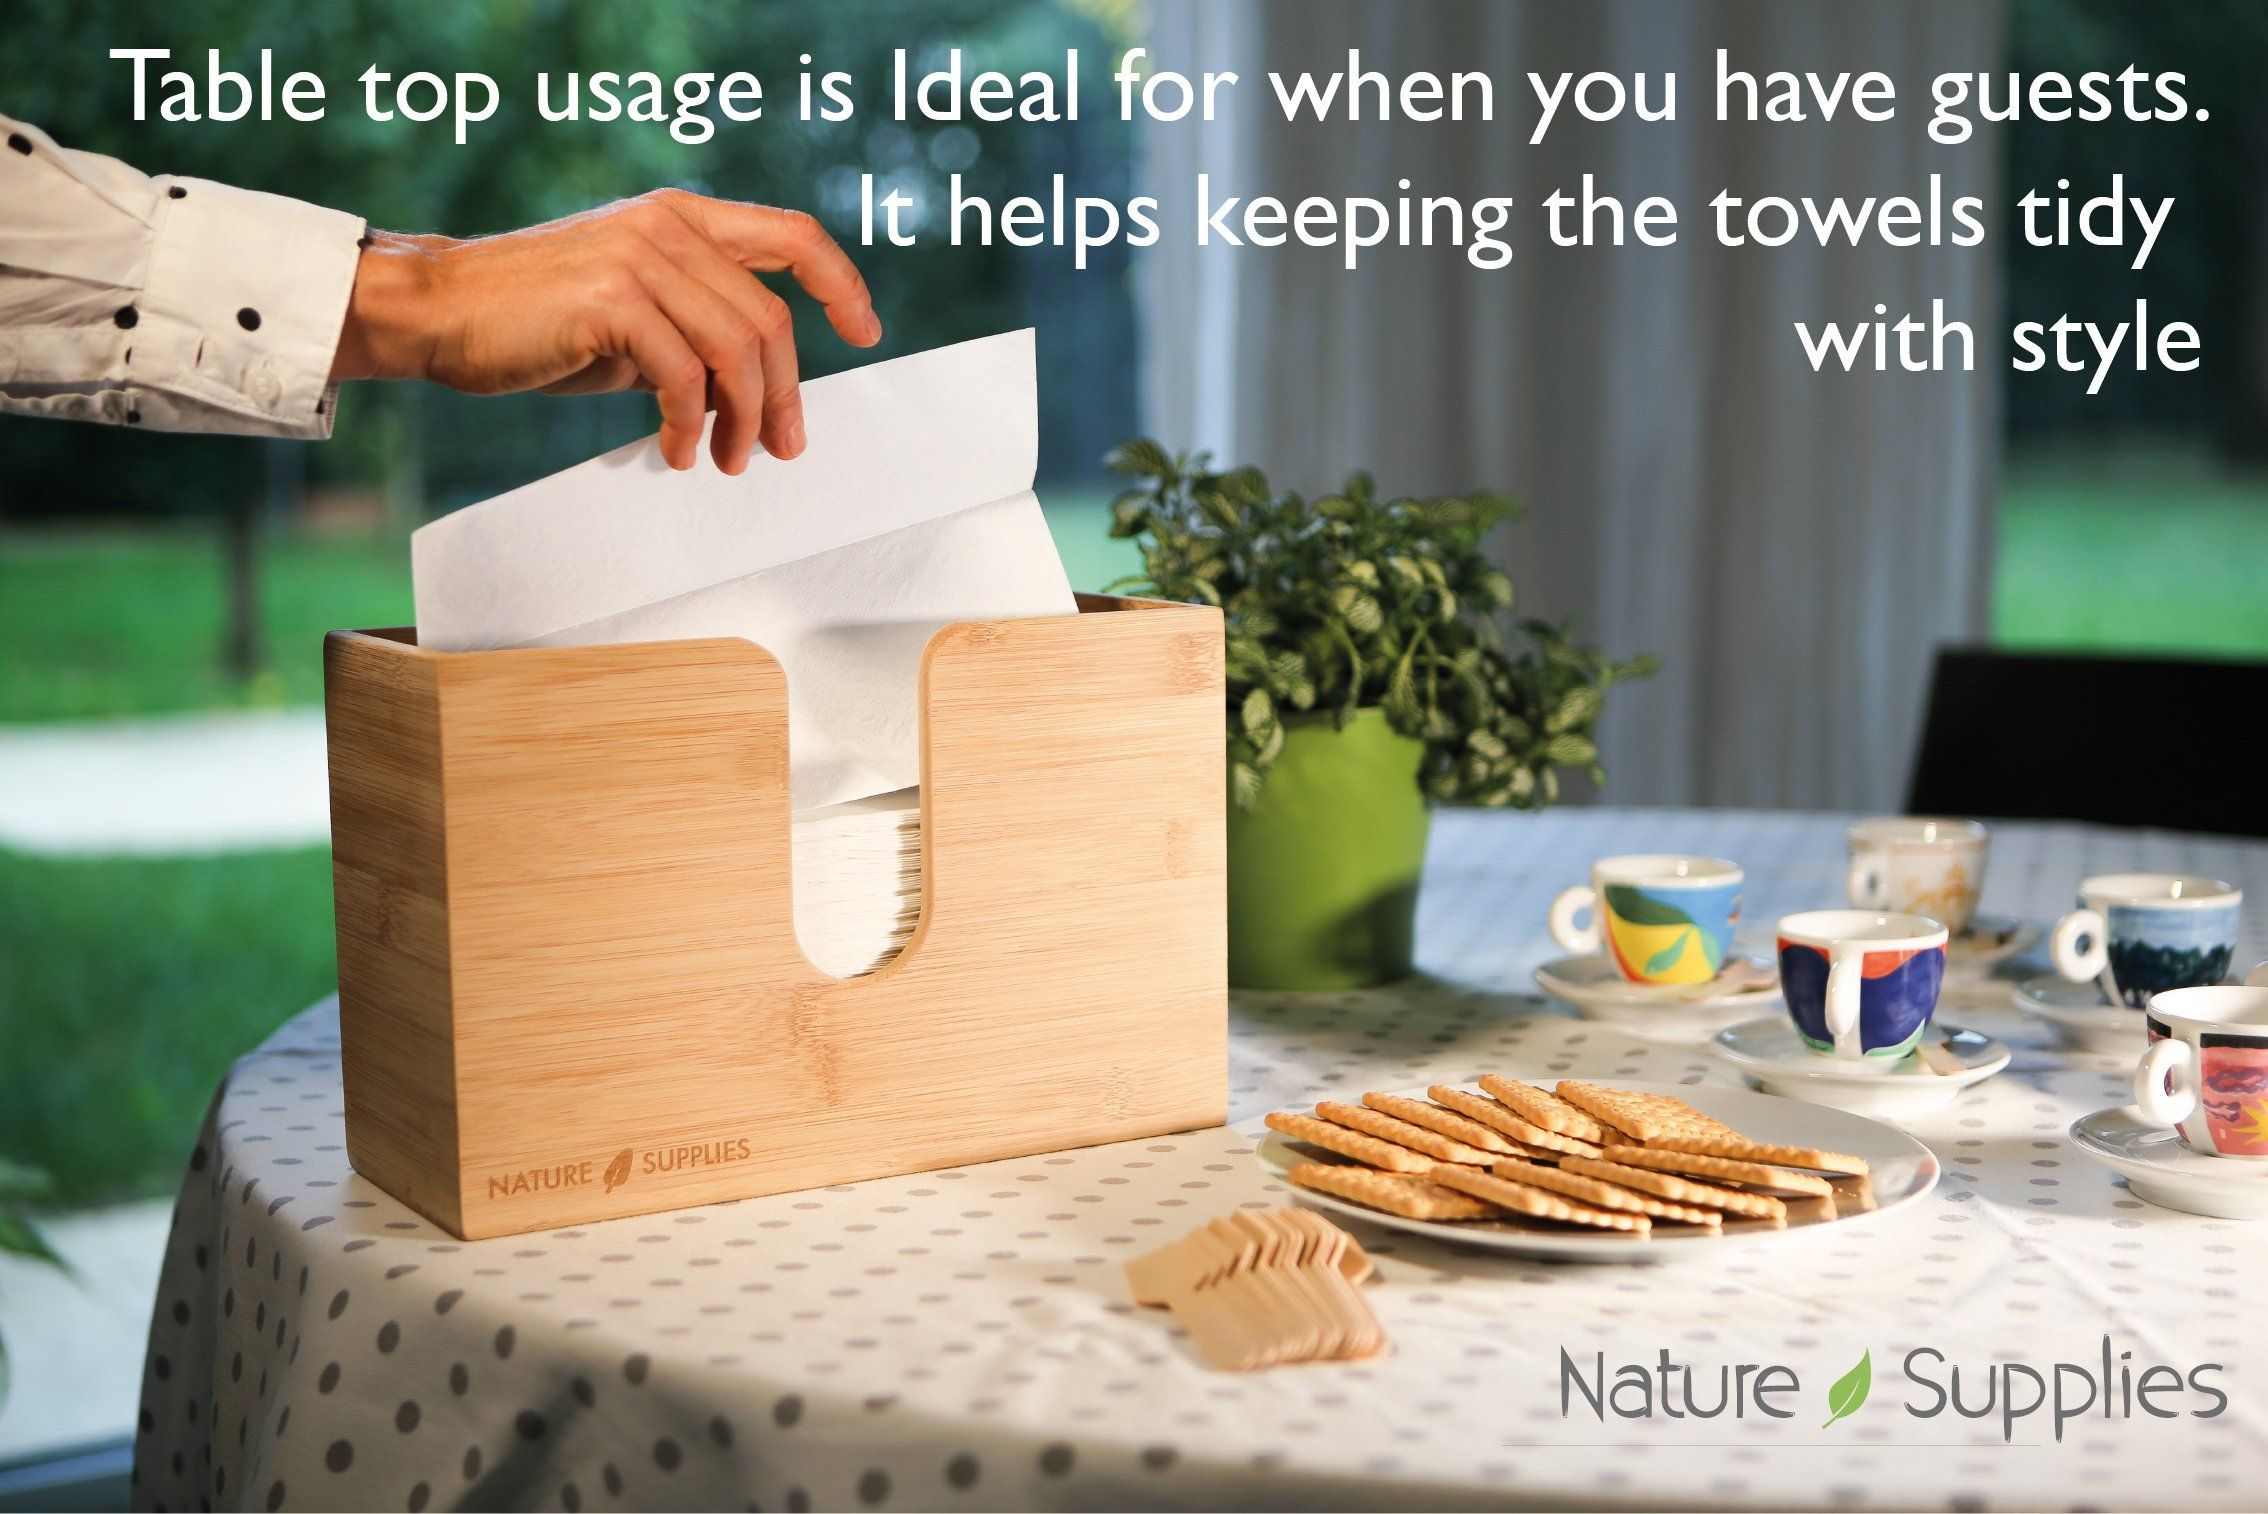 Nature Supplies Bamboo Paper Towel Dispenser For Bathroom And